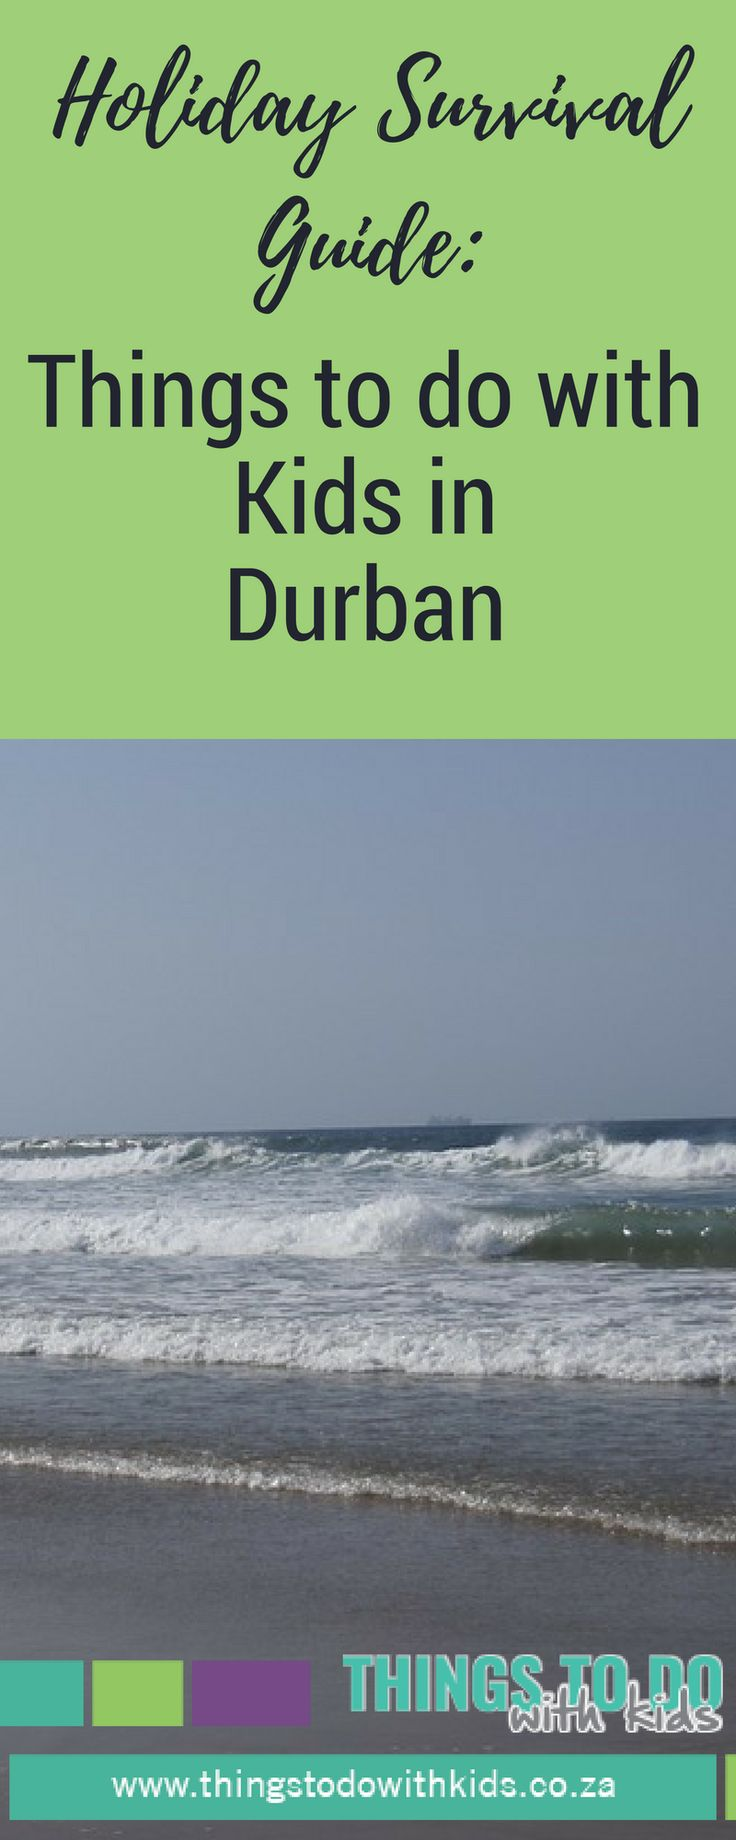 Winter Holiday Entertainment in Durban | Things to do with Kids this Holiday in Durban | Child-friendly activities and excursions in Durban | Things to do with Kids | Activities and Excursions